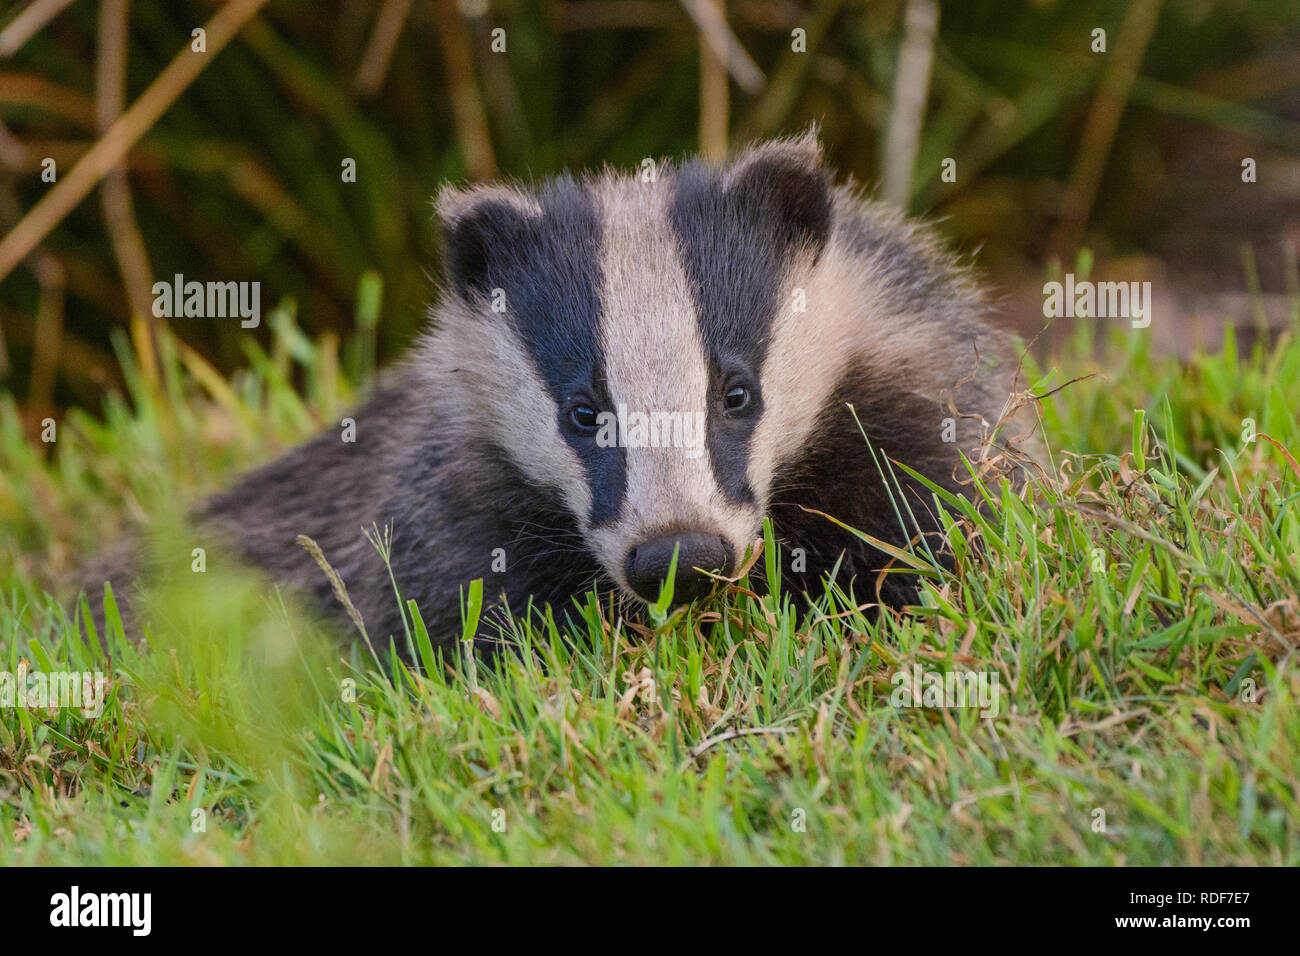 Wild Badger emerging from it's sett in Derbyshire's Peak District National Park. - Stock Image